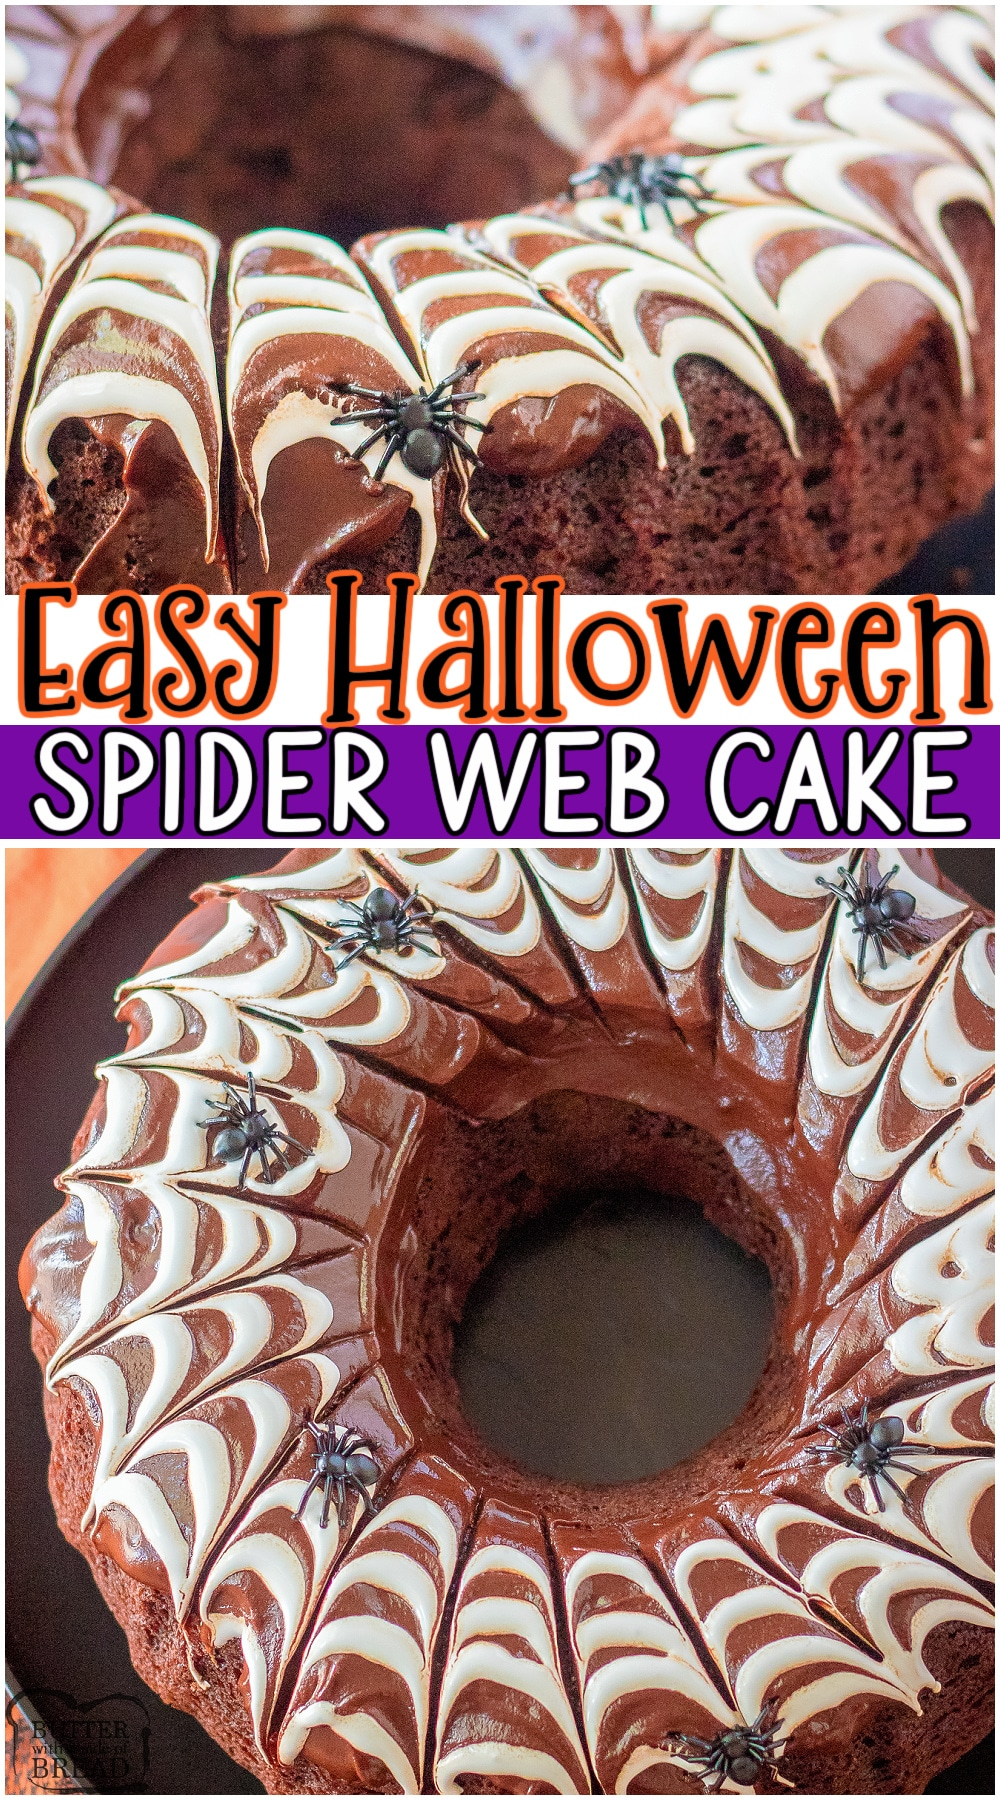 Spider web cake is the perfect Halloween treat! Homemade chocolate cake covered in a rich chocolate ganache with marshmallow fluff cobwebs that are so simple to make! Fun & festive, slightly creepy cake that everyone loves. #cake #spiderweb #Halloween #chocolate #easyrecipe from BUTTER WITH A SIDE OF BREAD